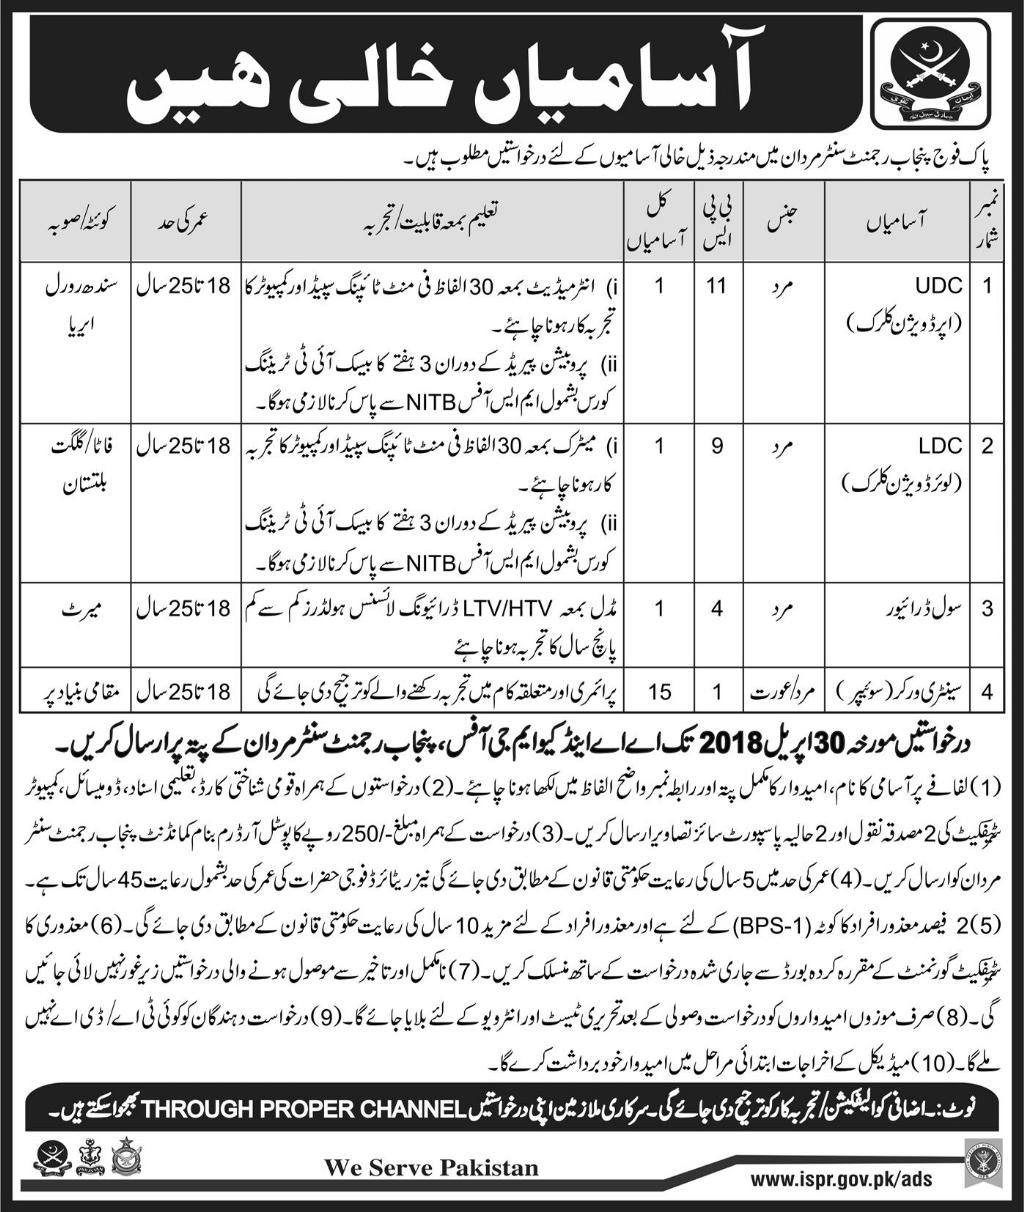 Pak Army Punjab Regiment Center Mardan 18 Jobs 15 April 2018 Daily Express Newspaper